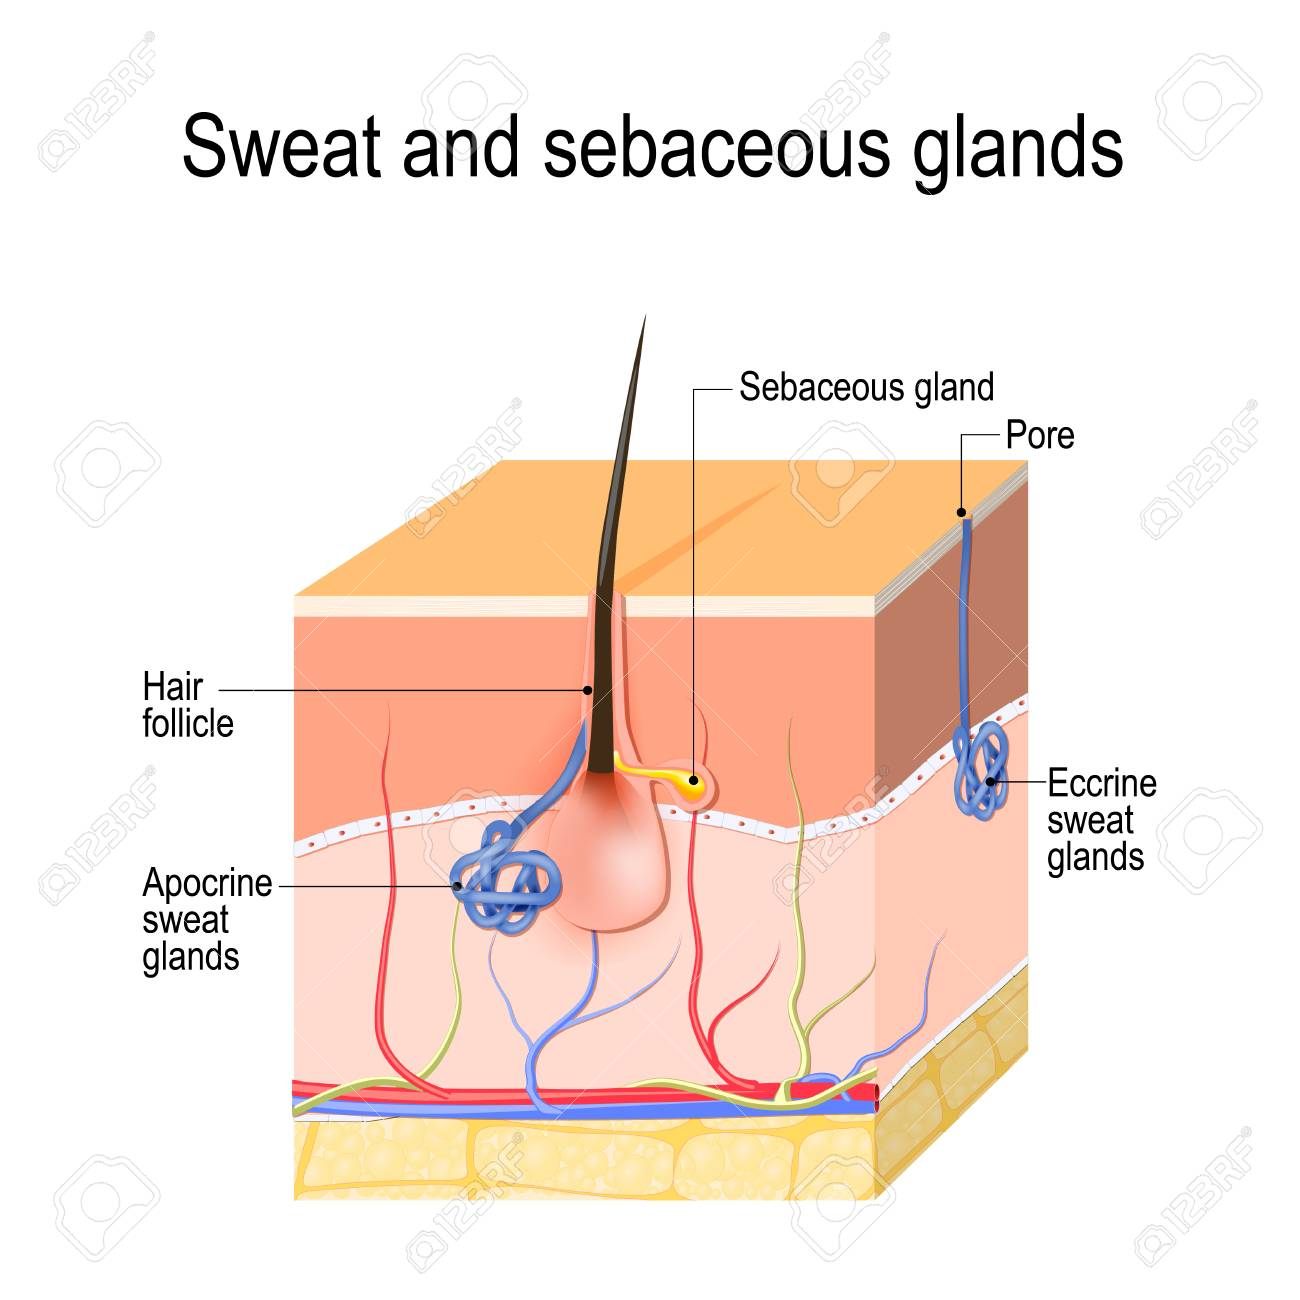 sweat glands (apocrine, eccrine) and sebaceous gland  cross section of the  human